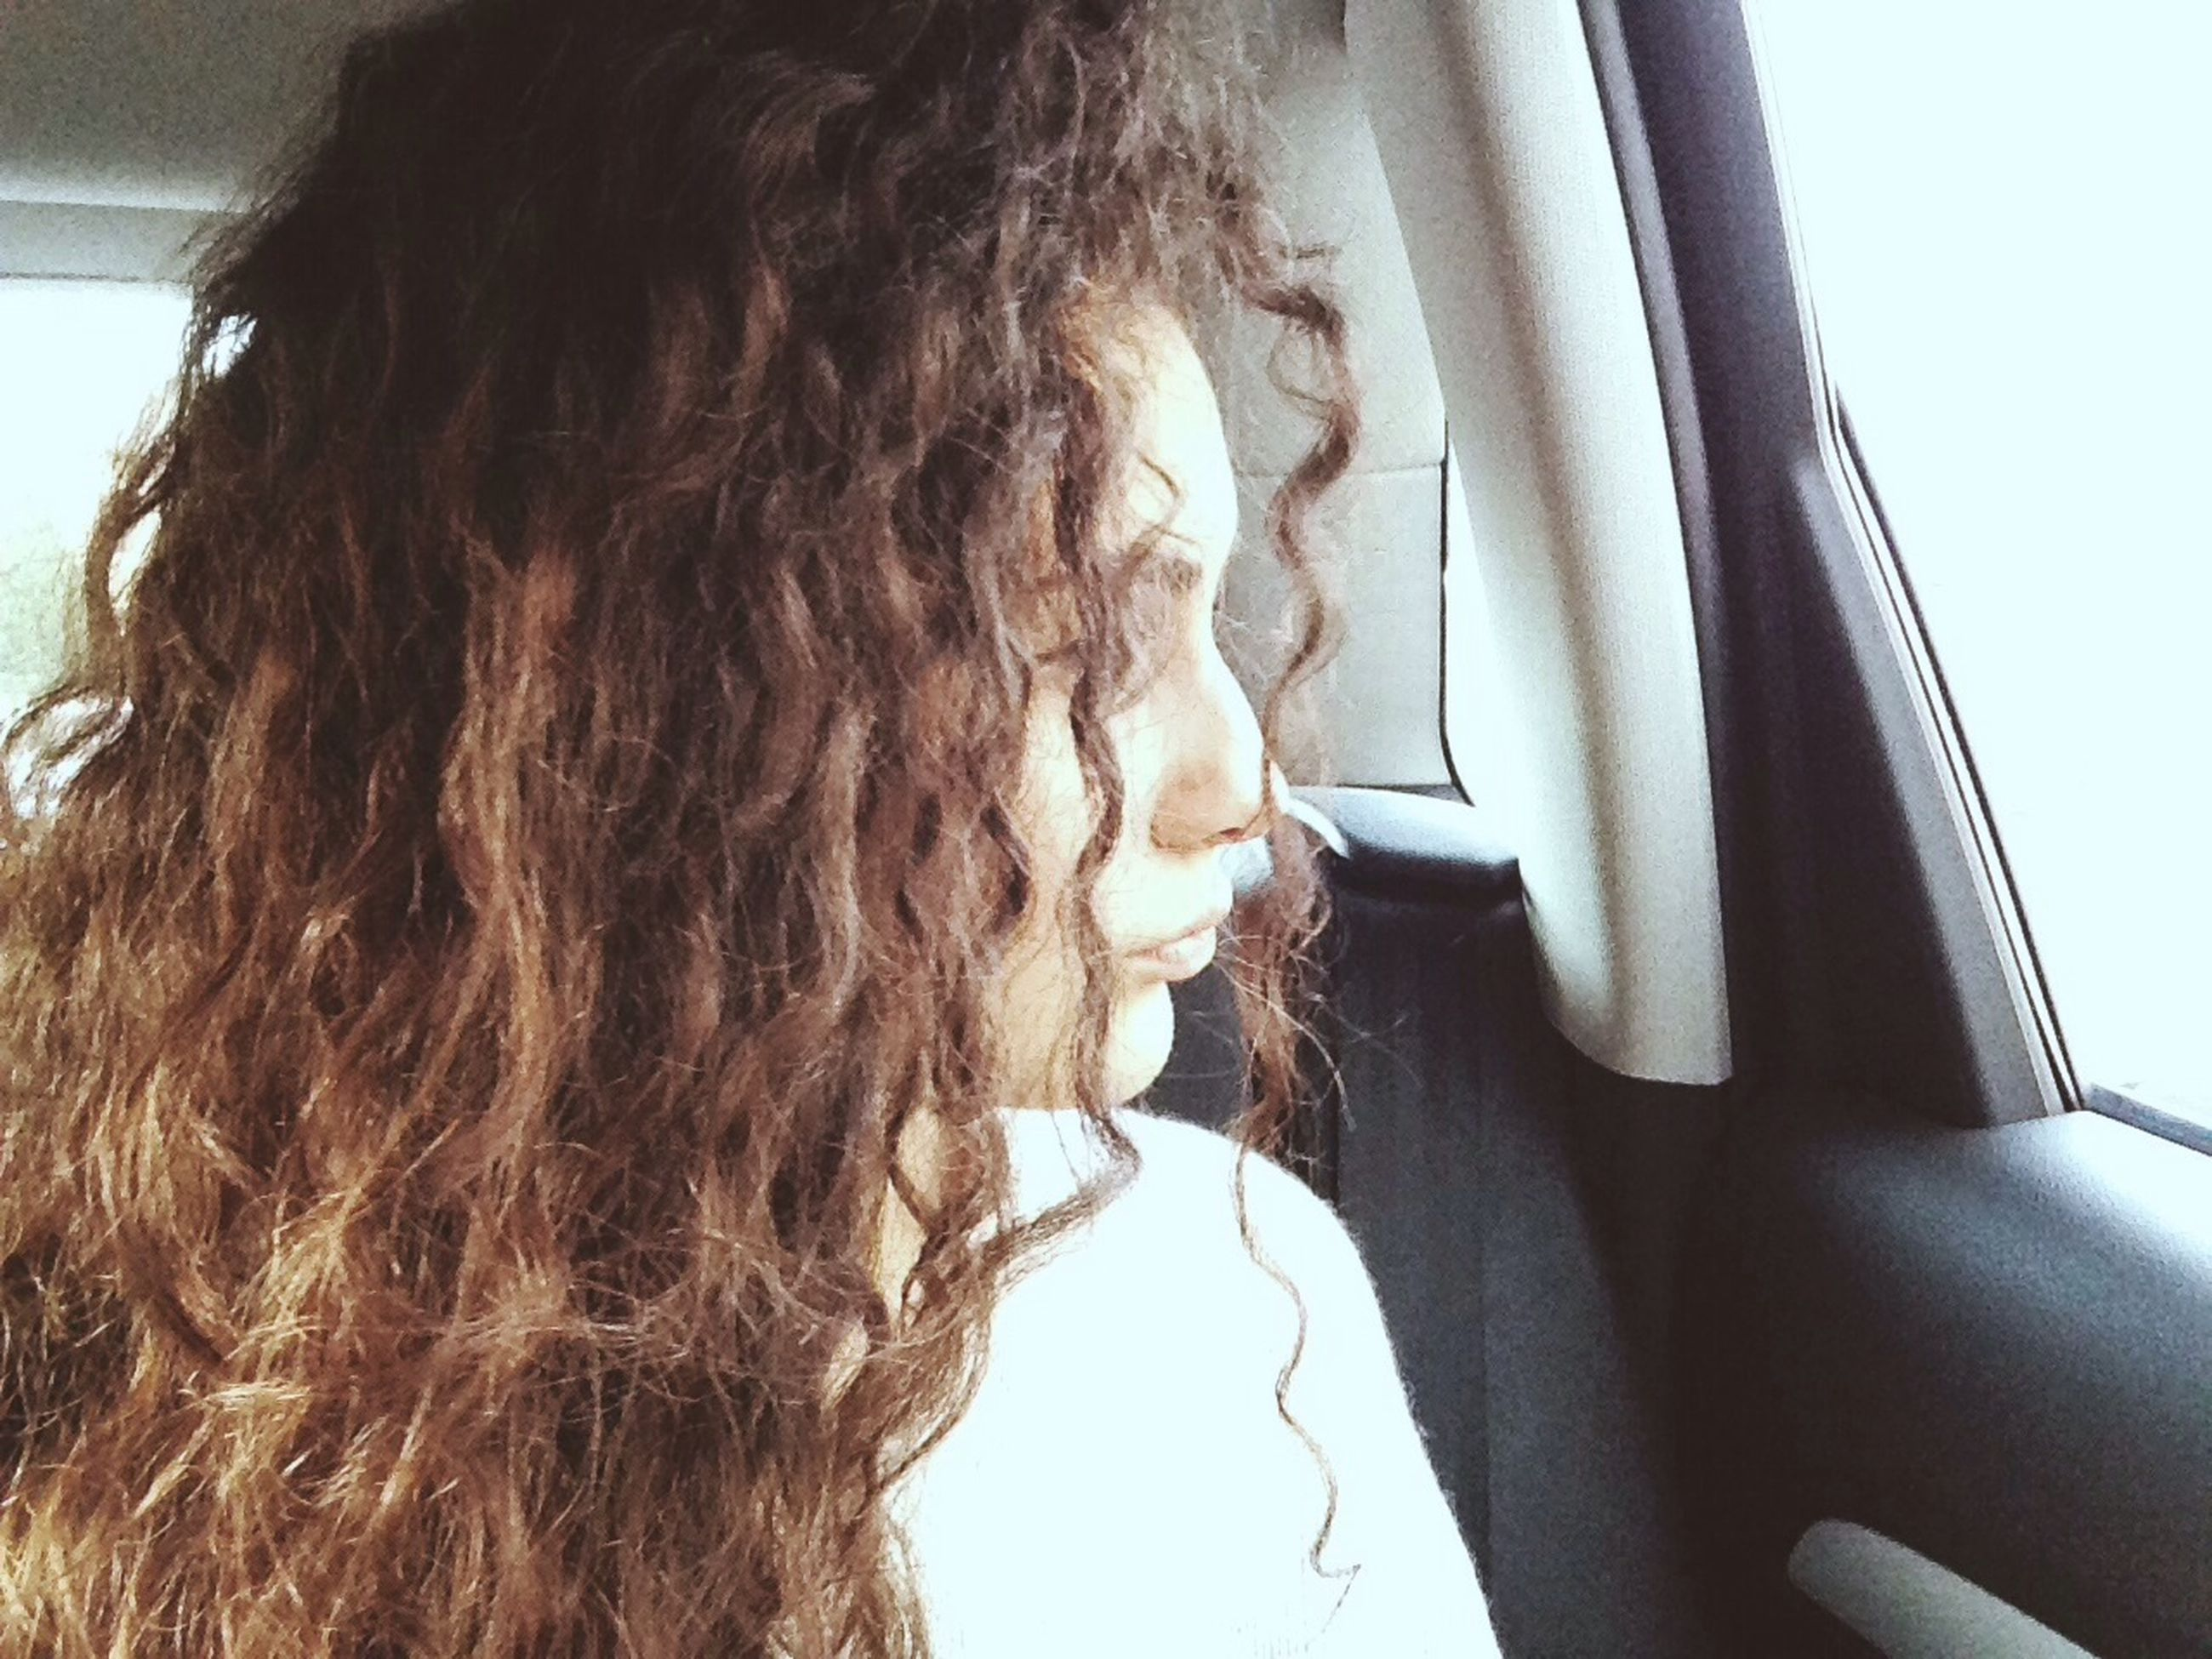 lifestyles, indoors, young adult, young women, leisure activity, long hair, headshot, person, transportation, human hair, window, vehicle interior, close-up, rear view, car, side view, day